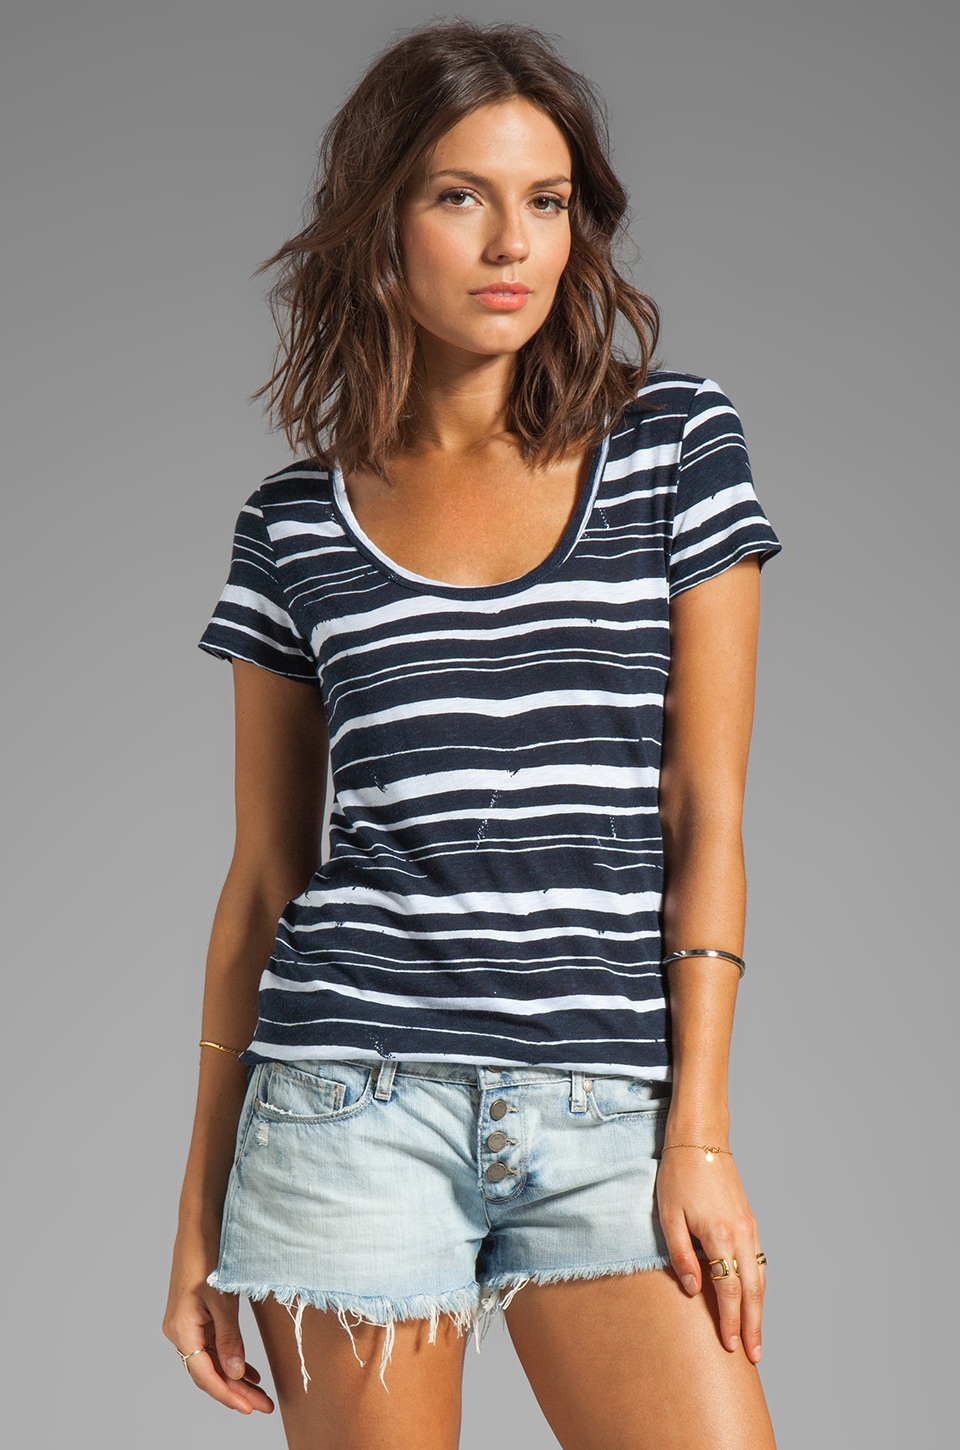 Velvet by Graham & Spencer Elsy Painted Stripe Top in Denim